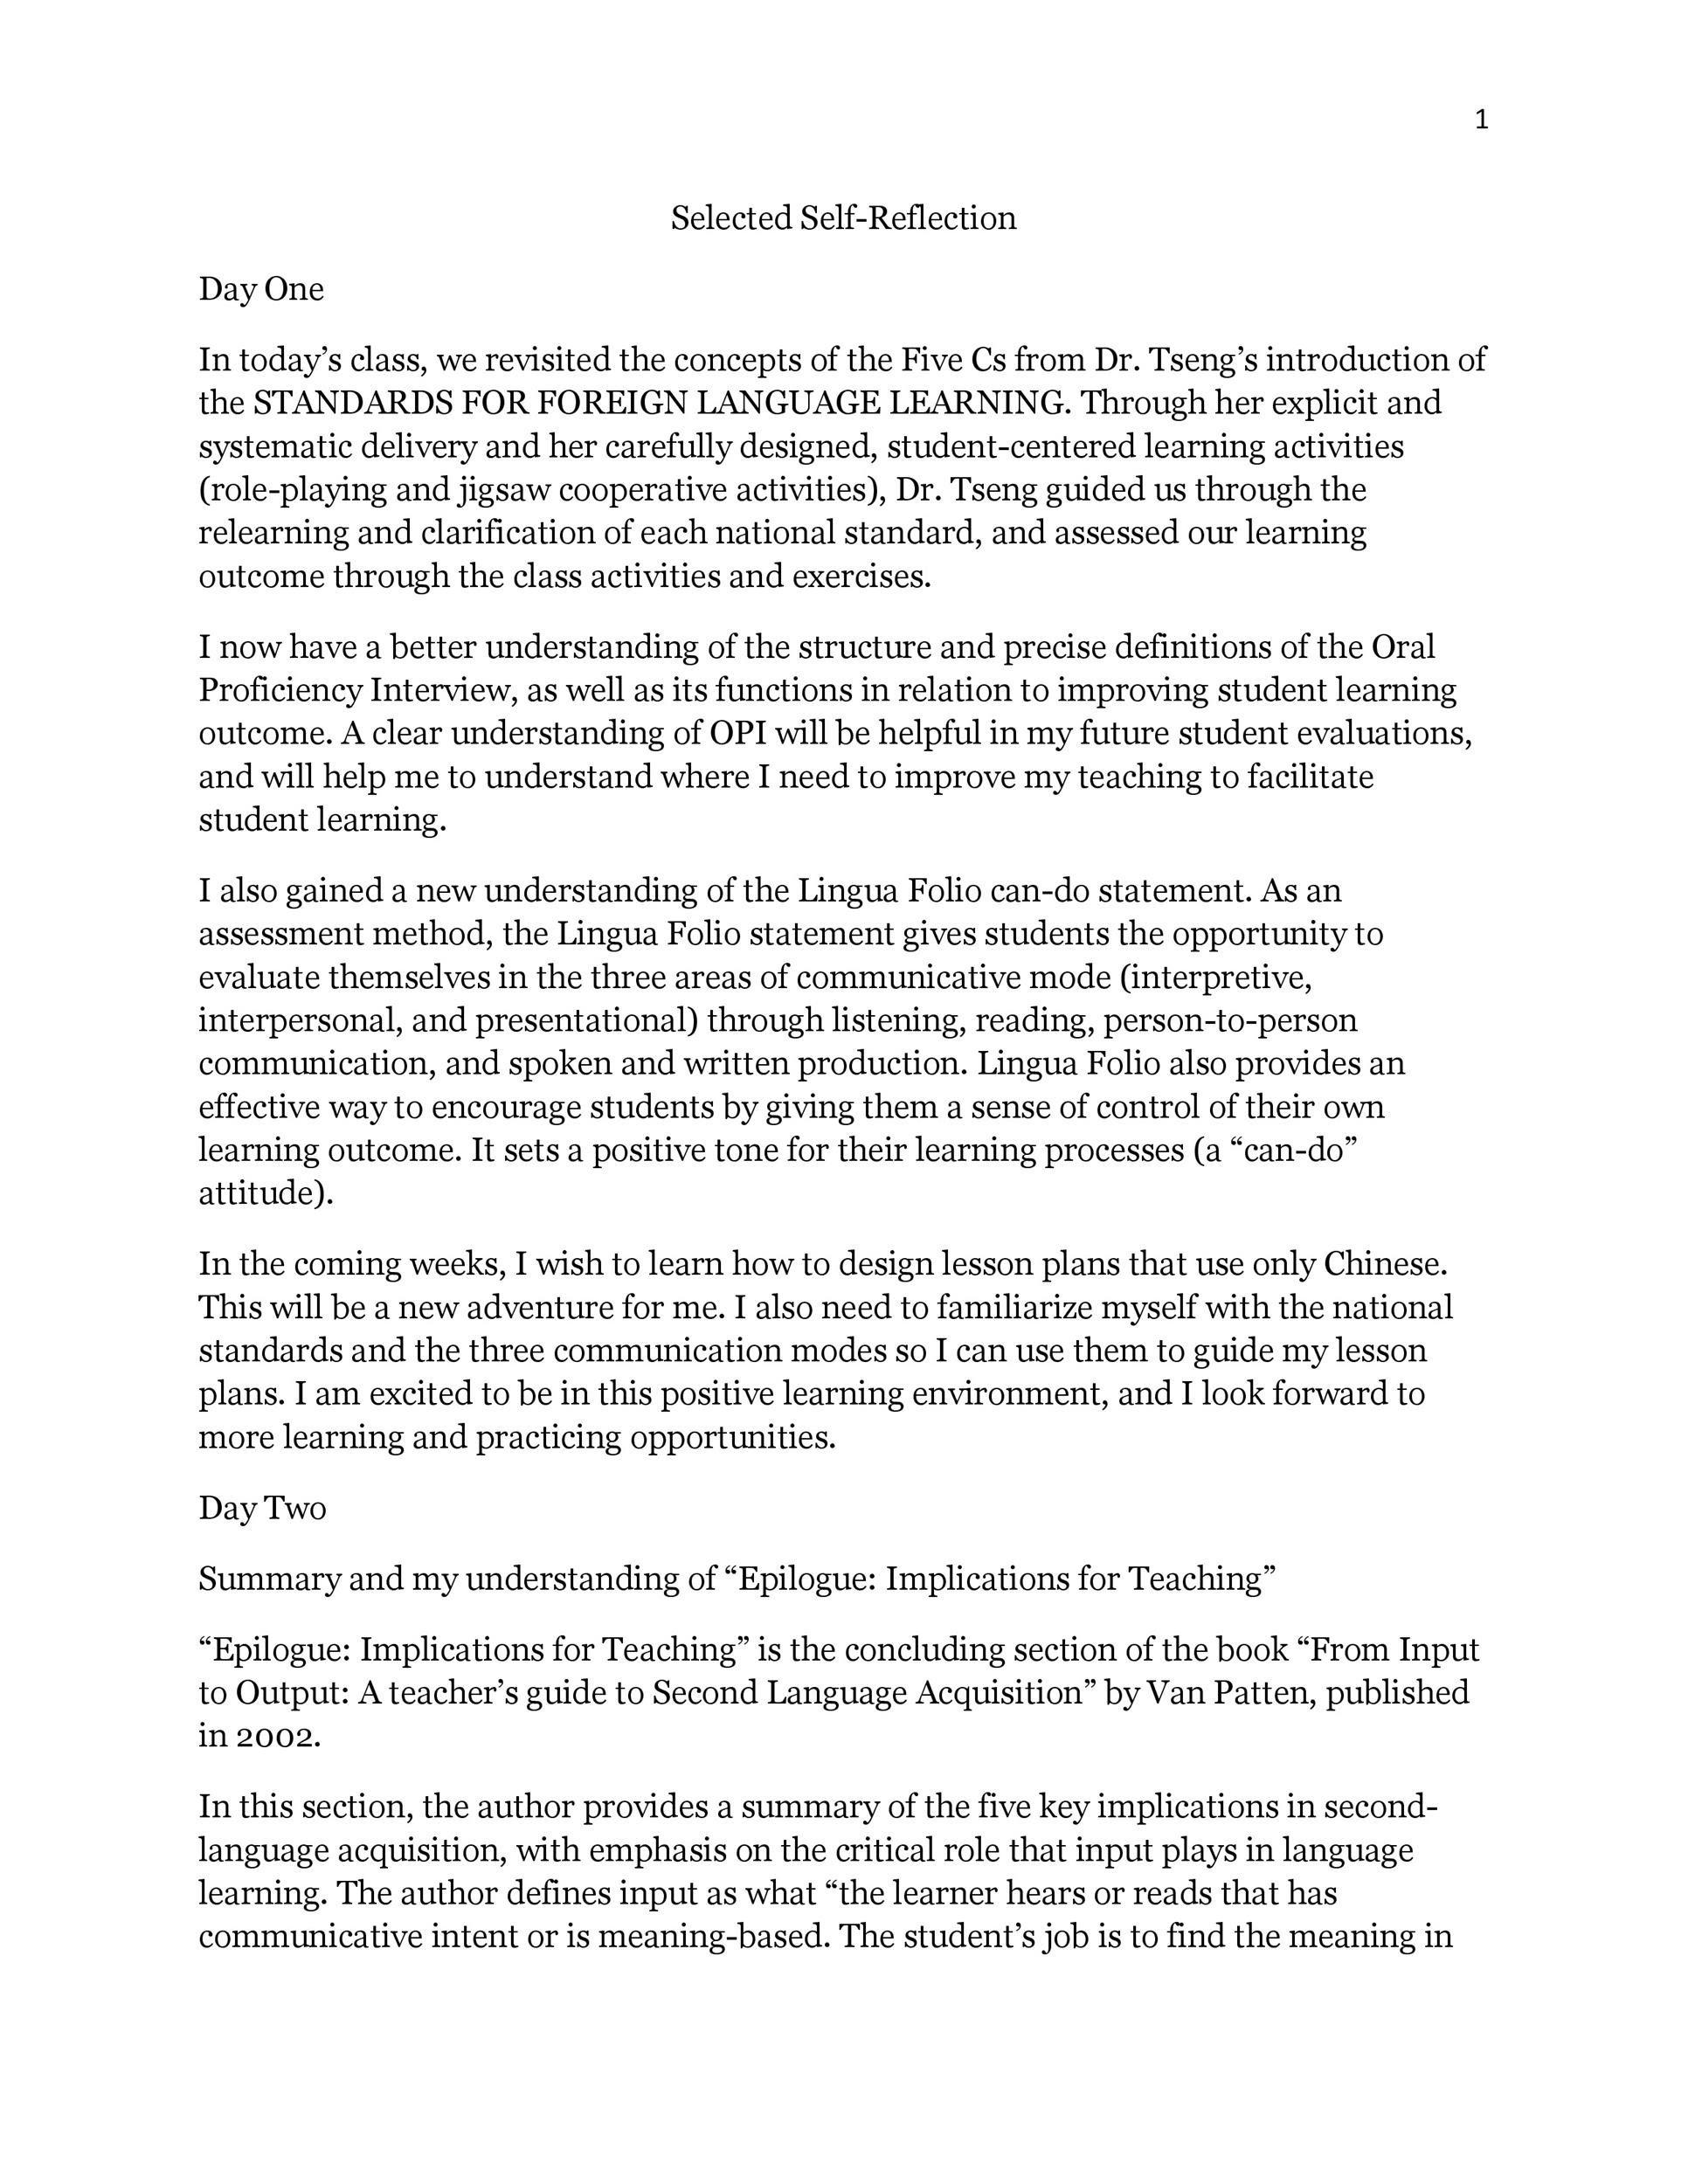 how to write reflective essay example